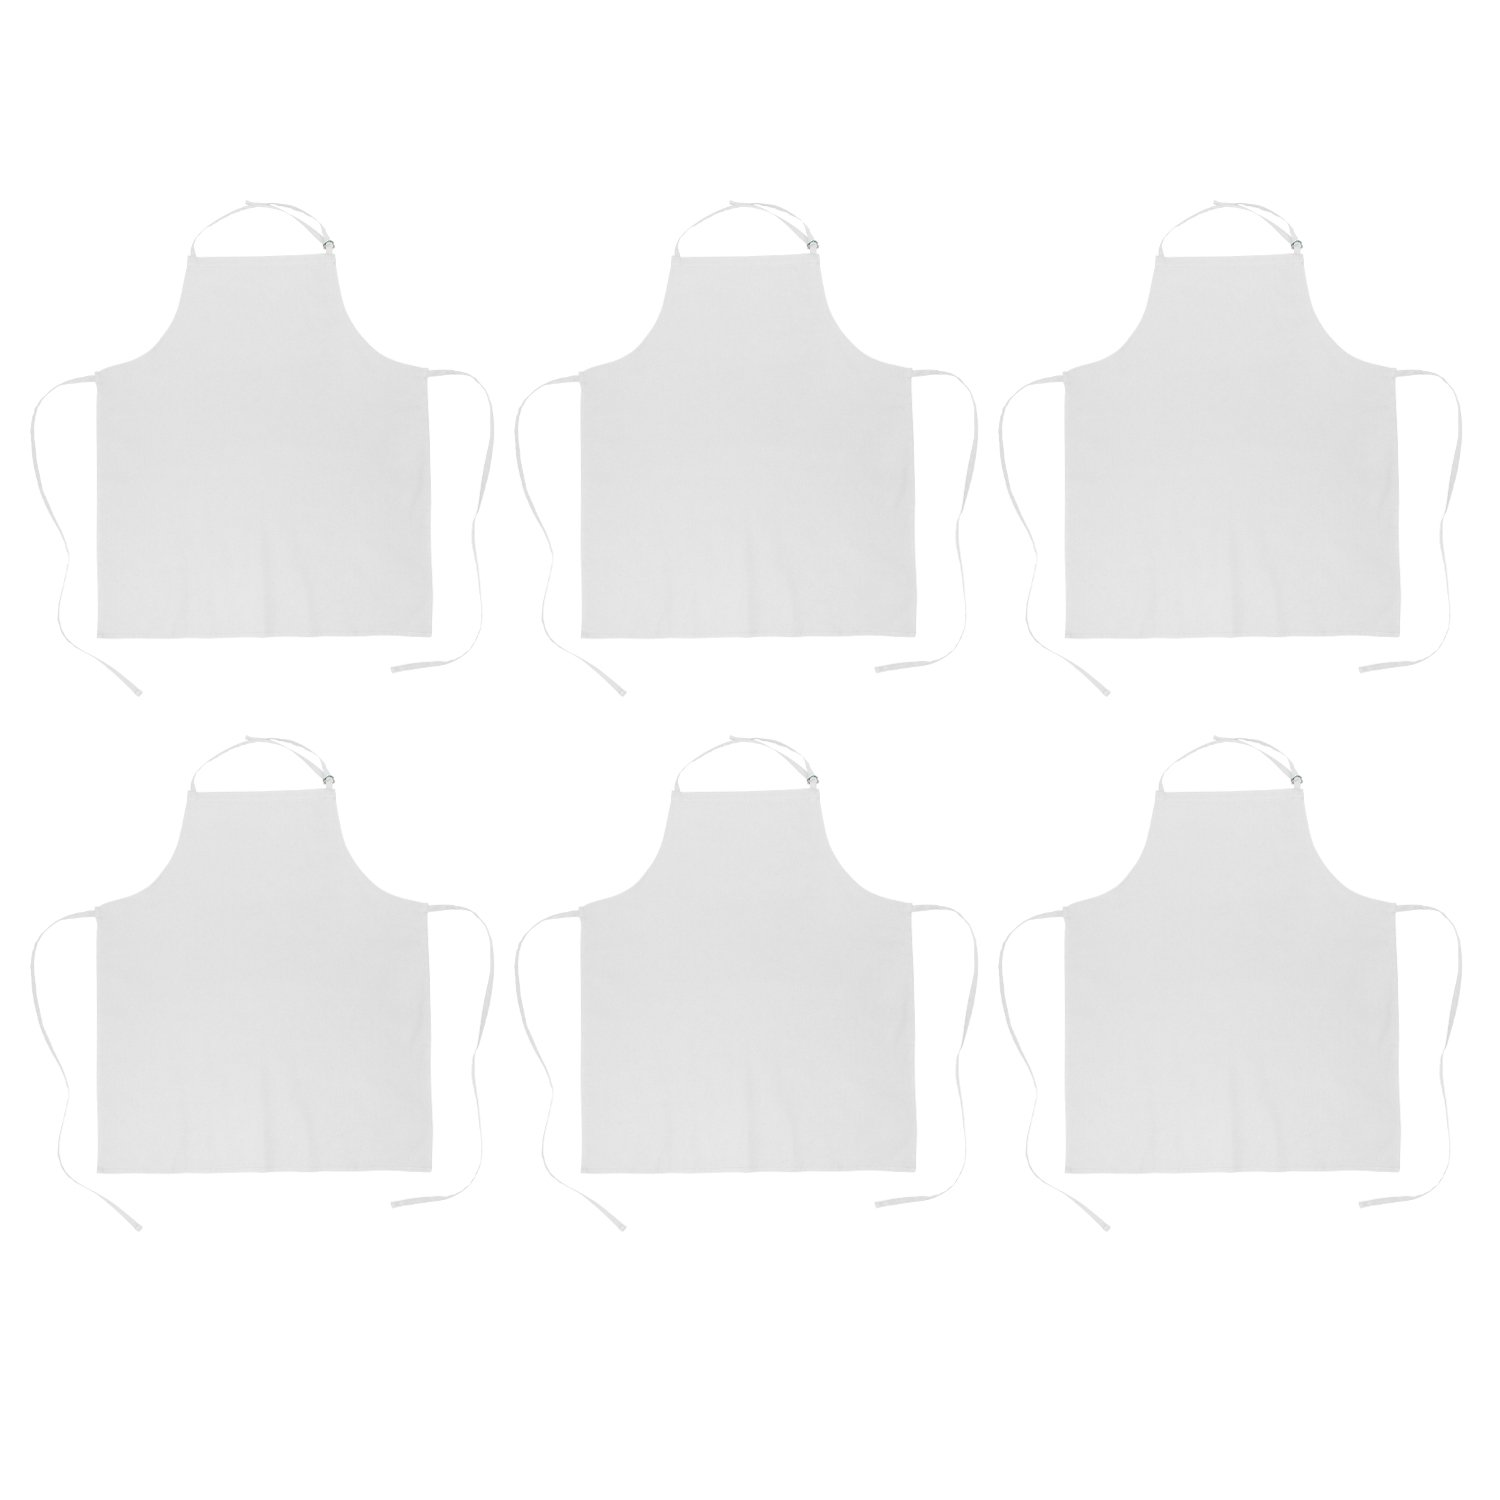 DII 100% Cotton, Commercial Bib Chef Apron, Restaurant, Bistro, Coffee Shop, Bar Waitress Waiter Uniform, Durable, Easy Care, Adjustable Neck & Waist Ties, Set of 6-White